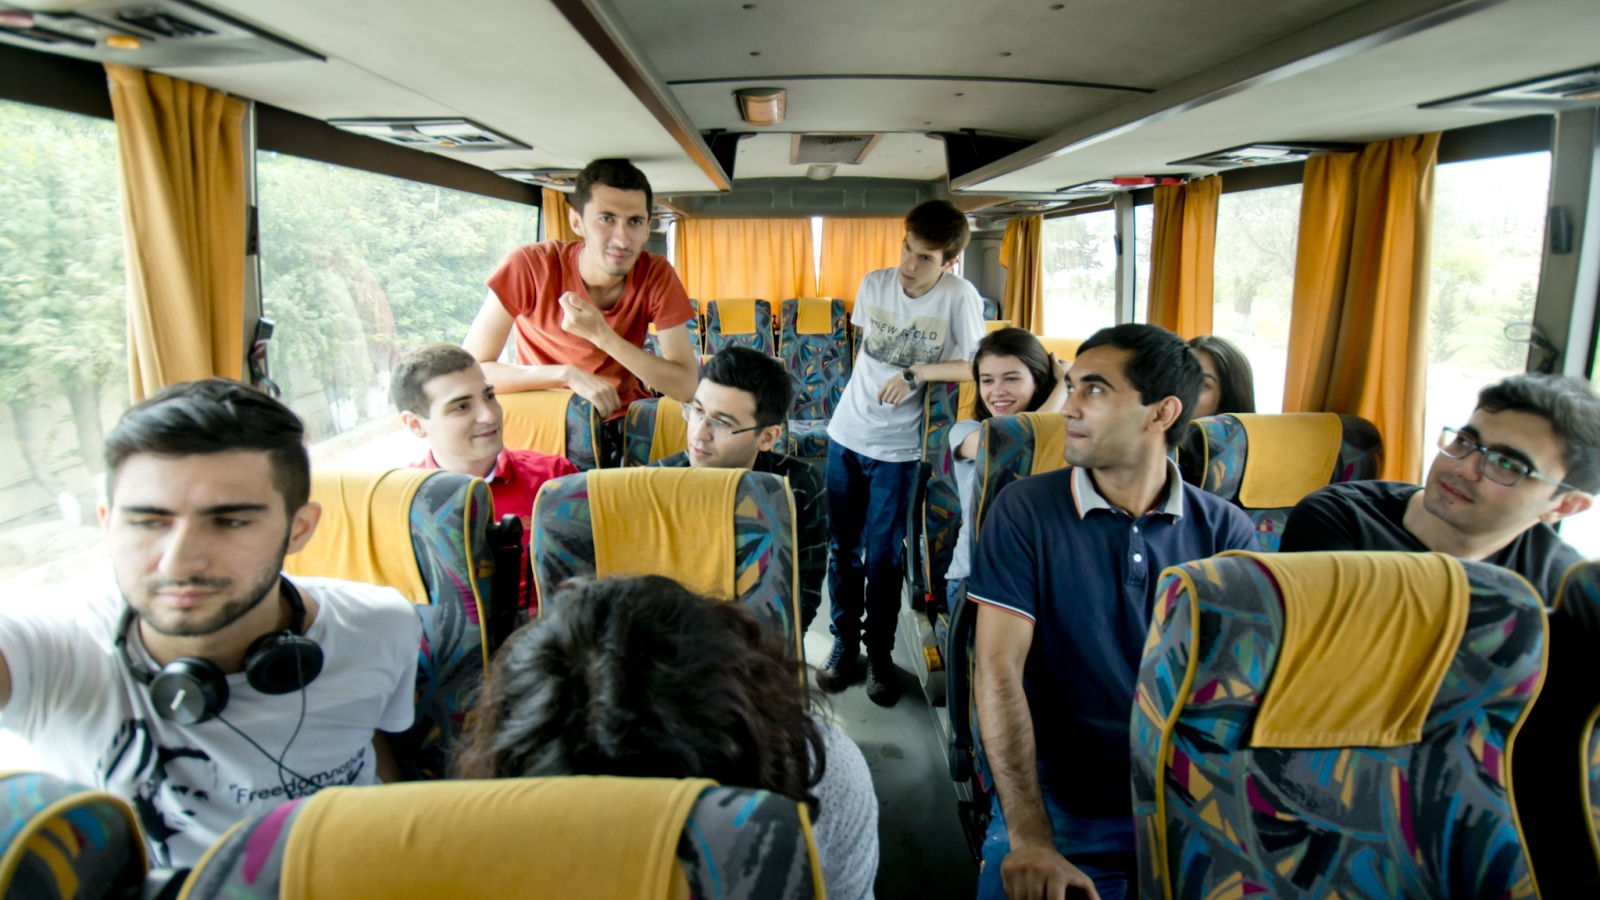 The second edition of the 'EuroSchool' took place in  in Qalaalti, a mountainous resort area of Azerbaijan